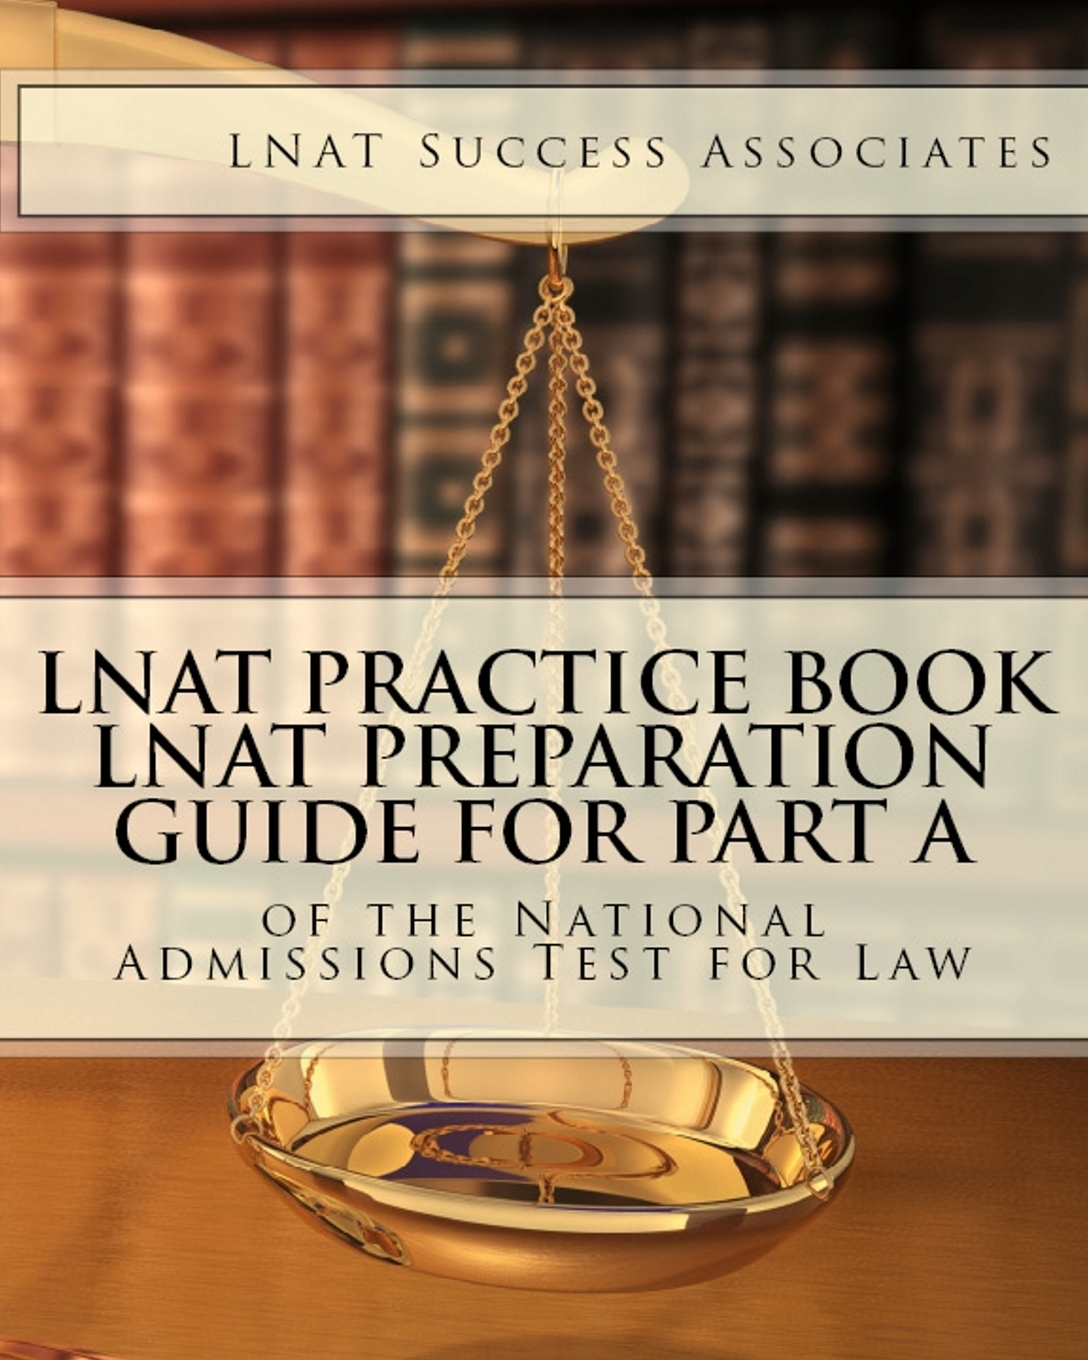 LNAT Practice Book. LNAT Preparation Guide for Part A of the National Admissions Test for Law